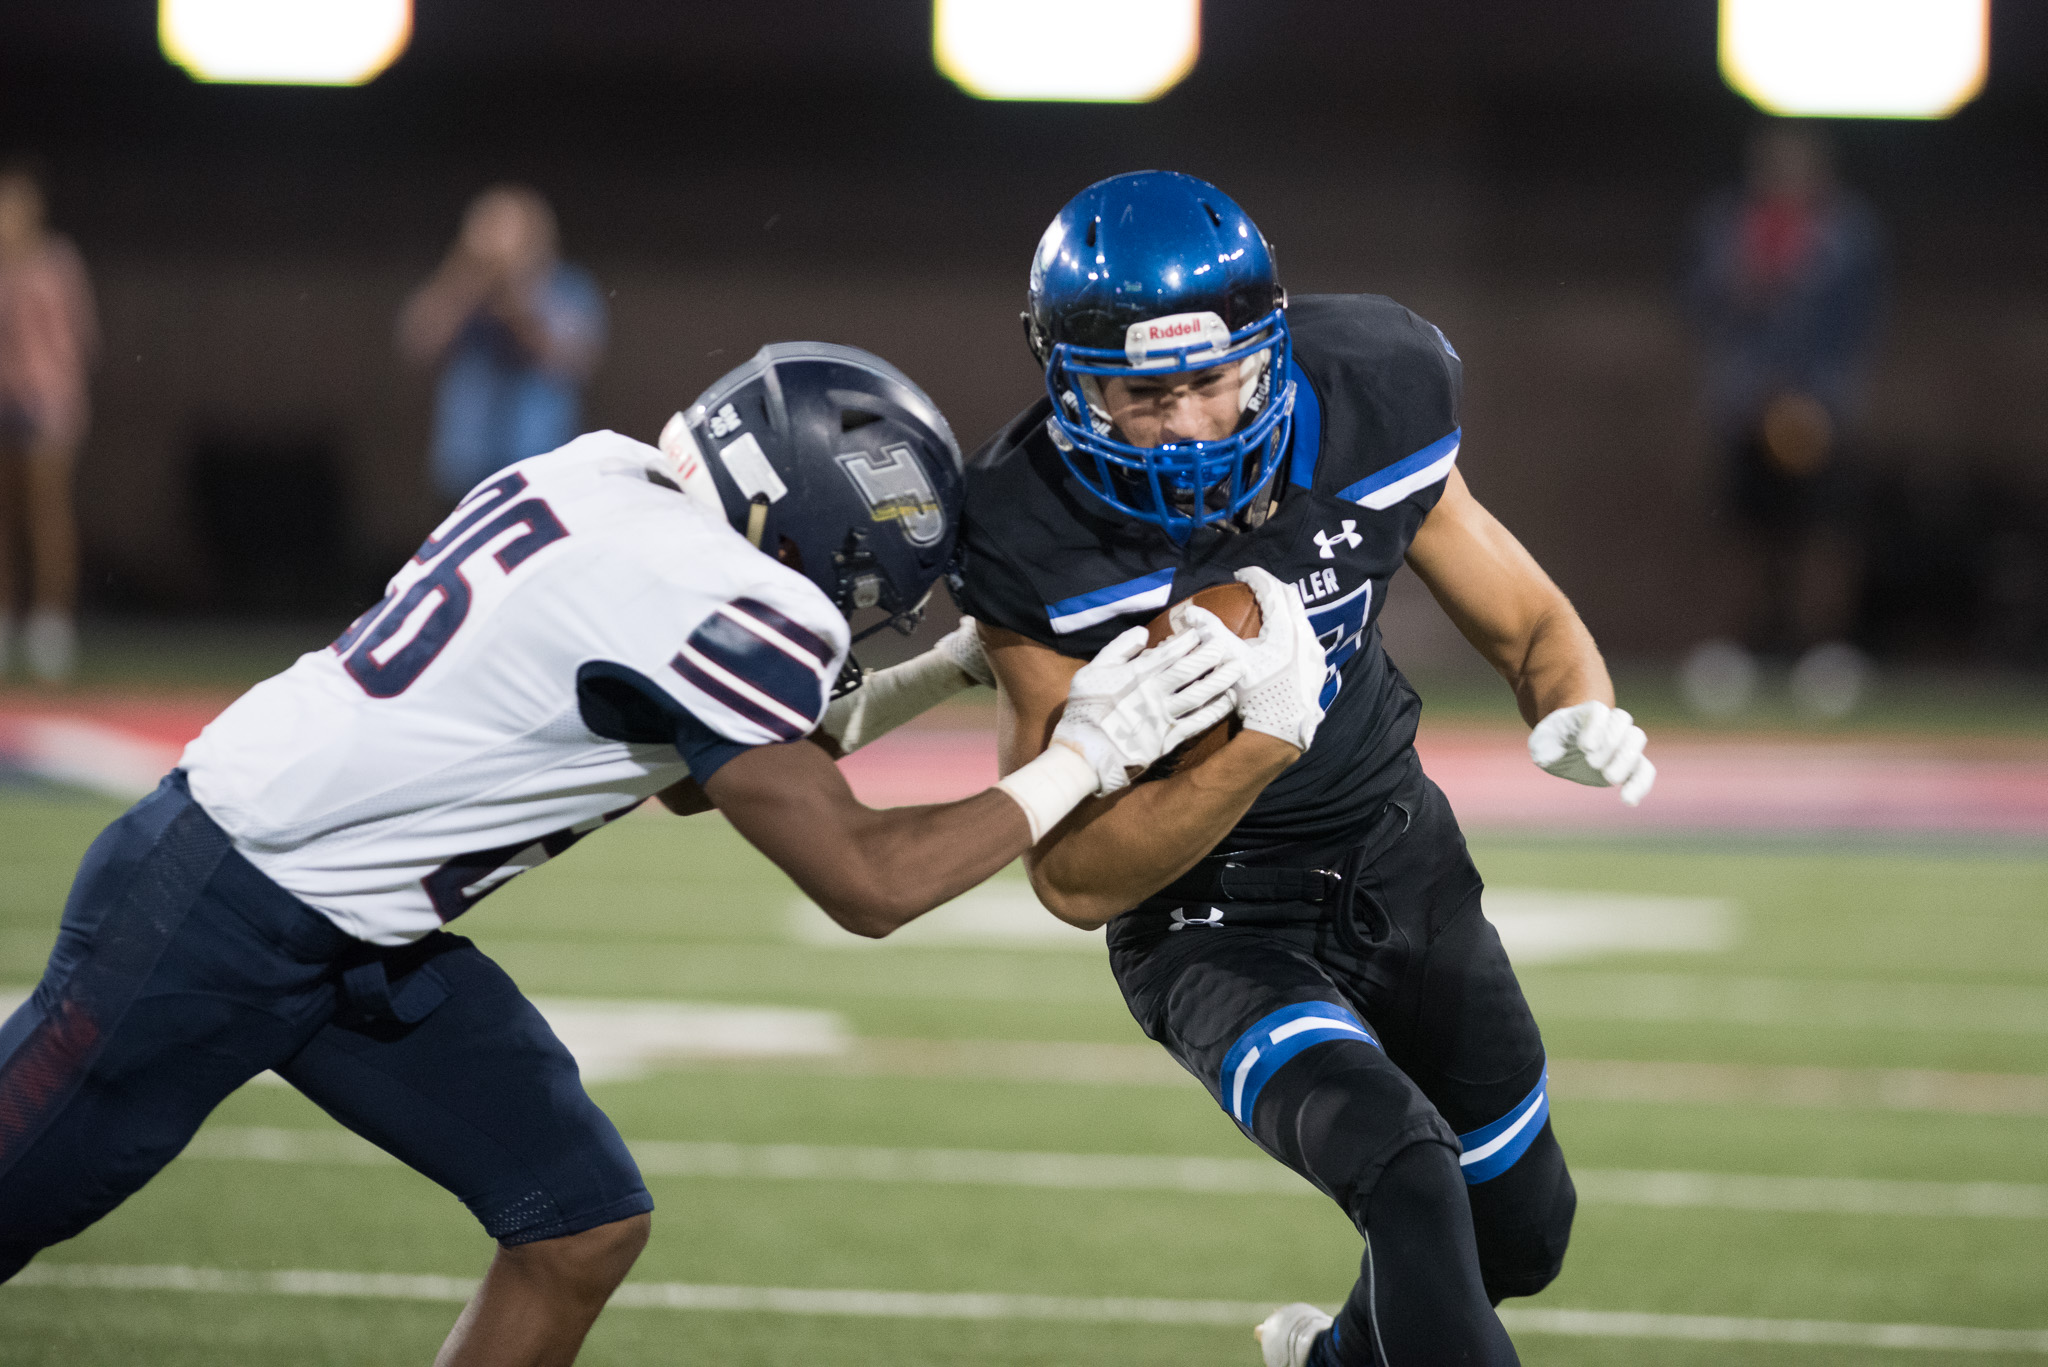 Chandler Football Selected for Bowl Game - Sports360AZ